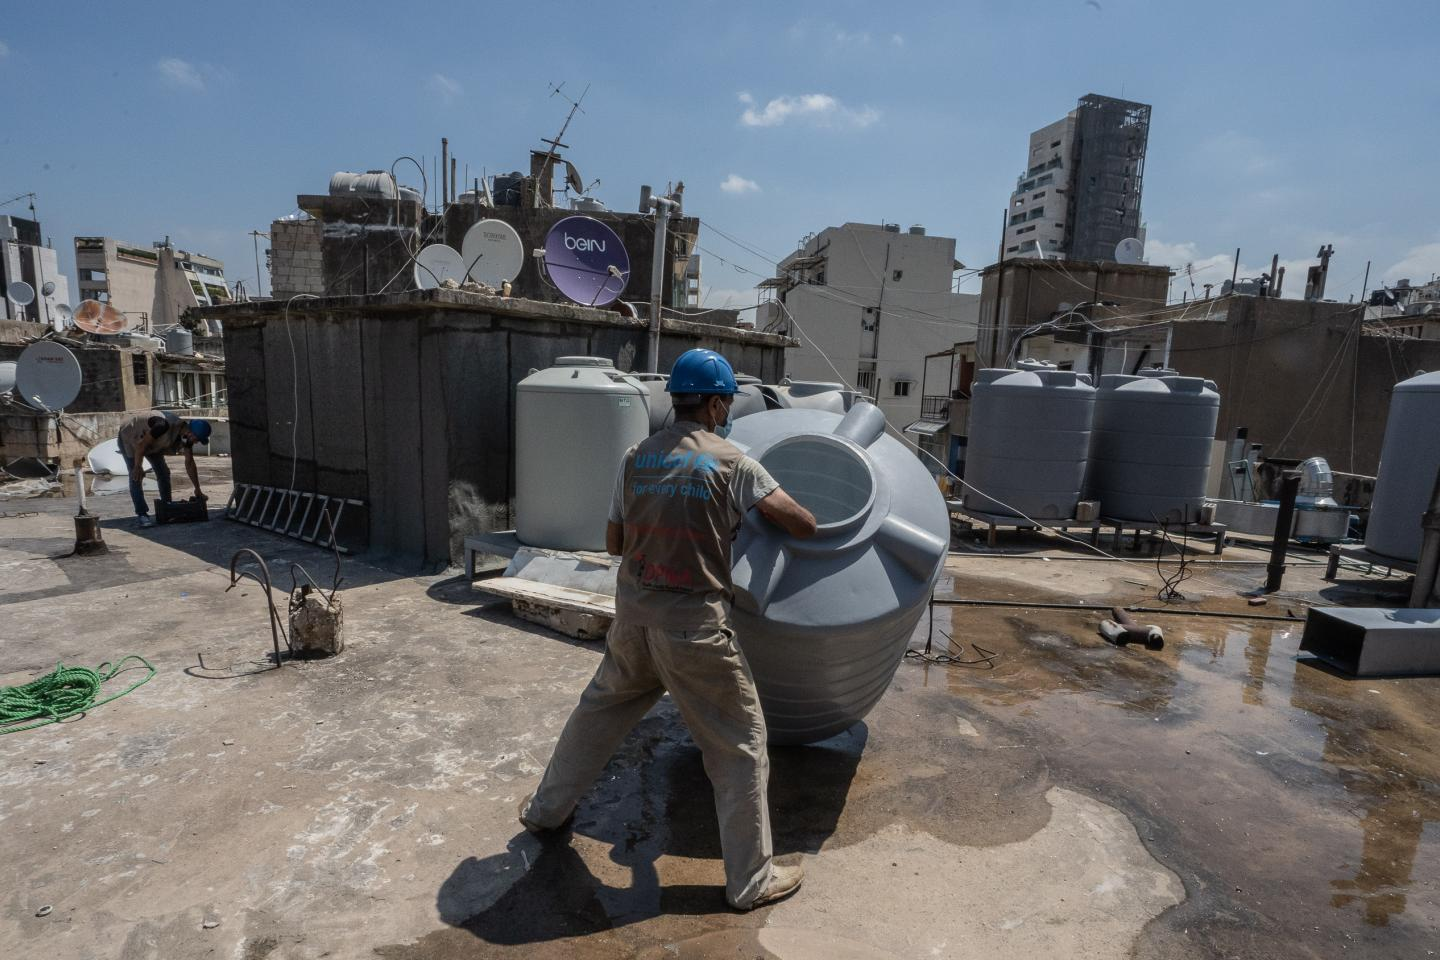 Severe Water Shortages Compound Desperate Situation For Children And Families In Beirut Desperate situation — index peril burton s legal thesaurus. severe water shortages compound